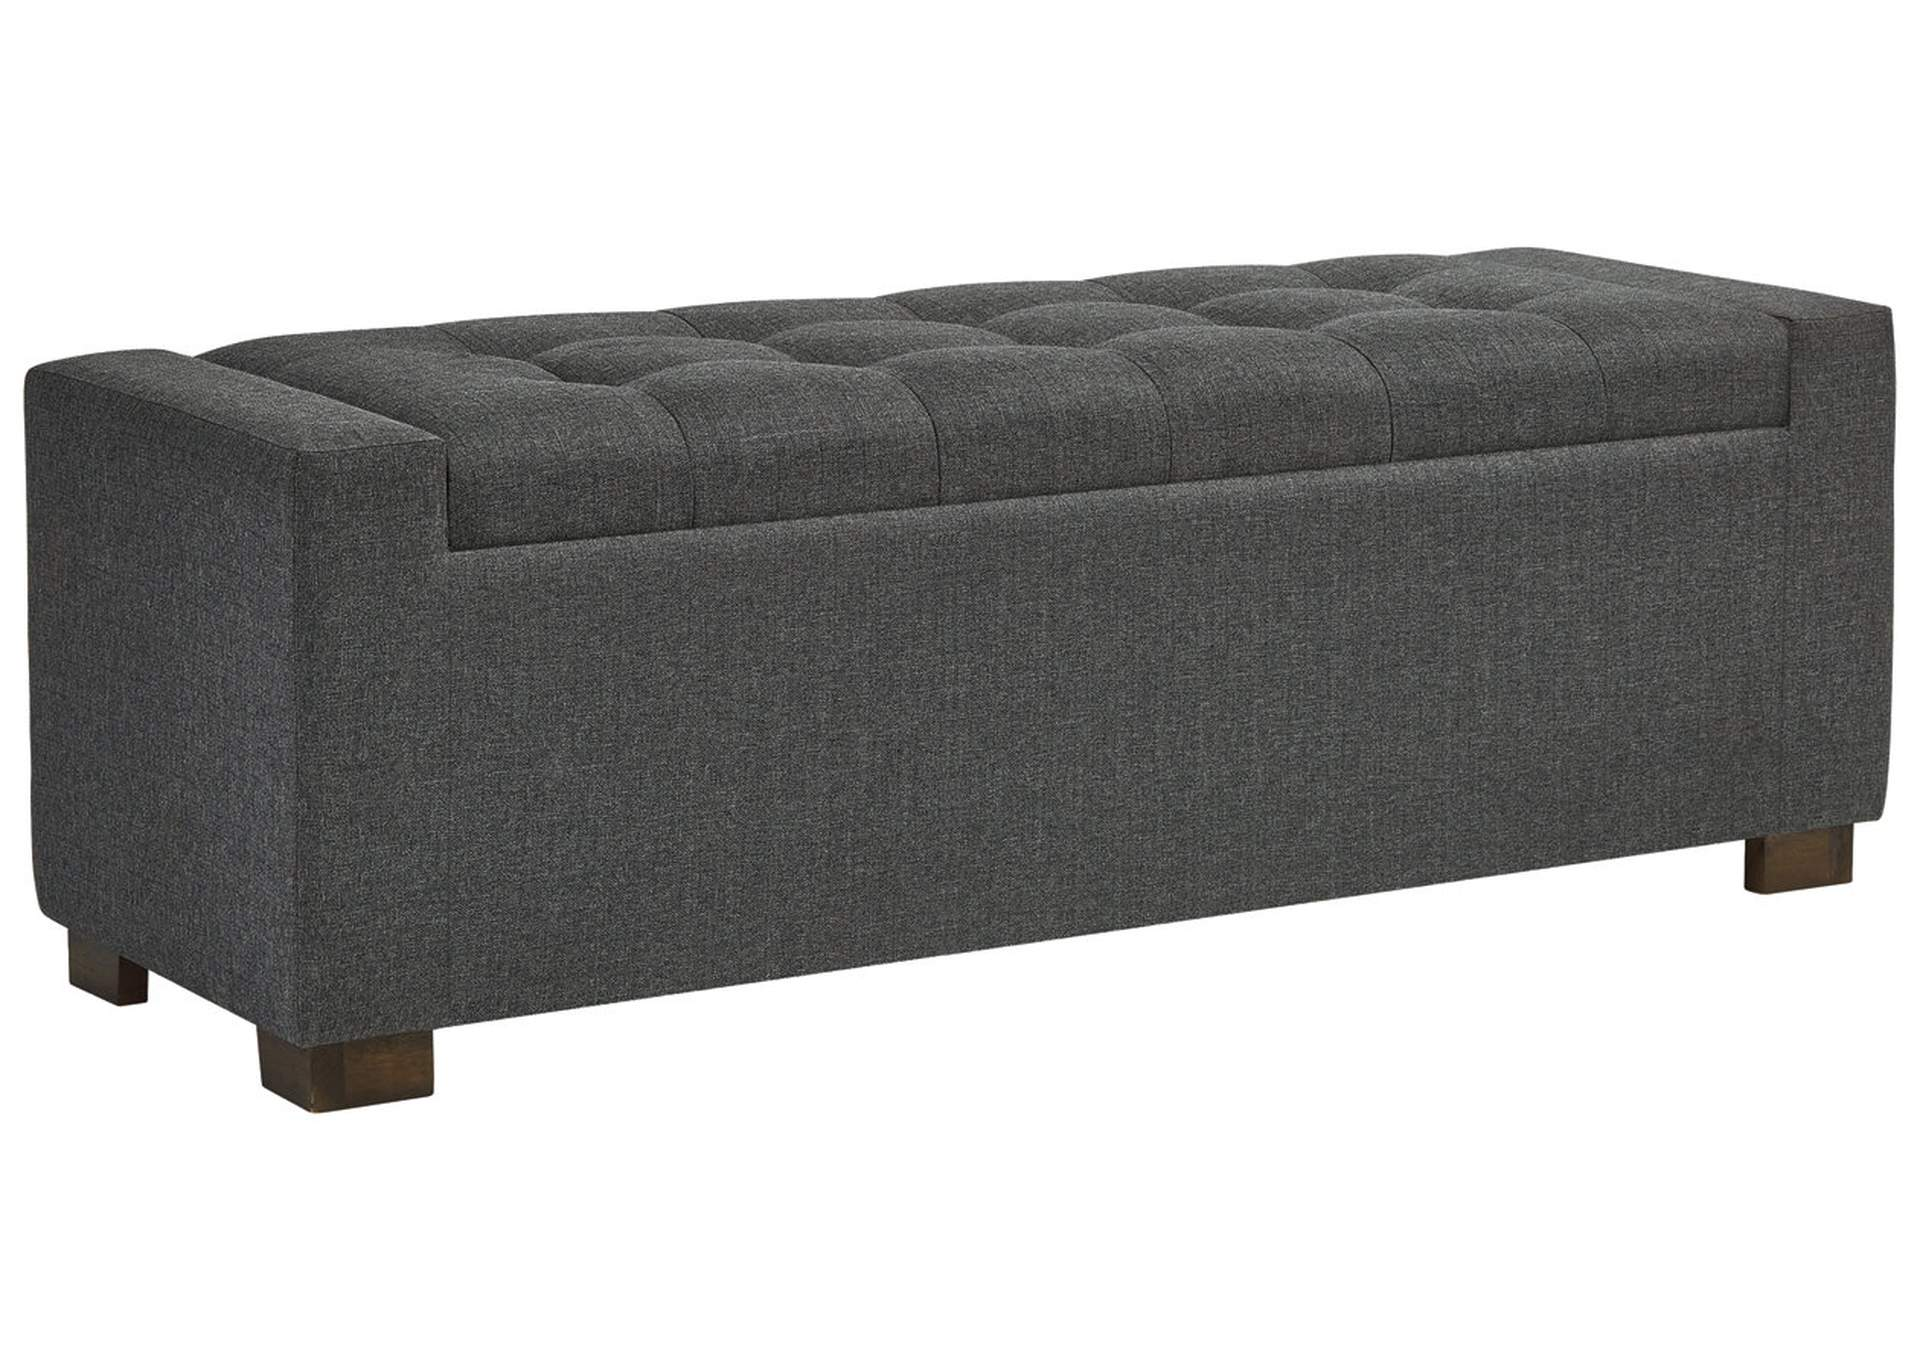 Cortwell Storage Bench,Signature Design By Ashley